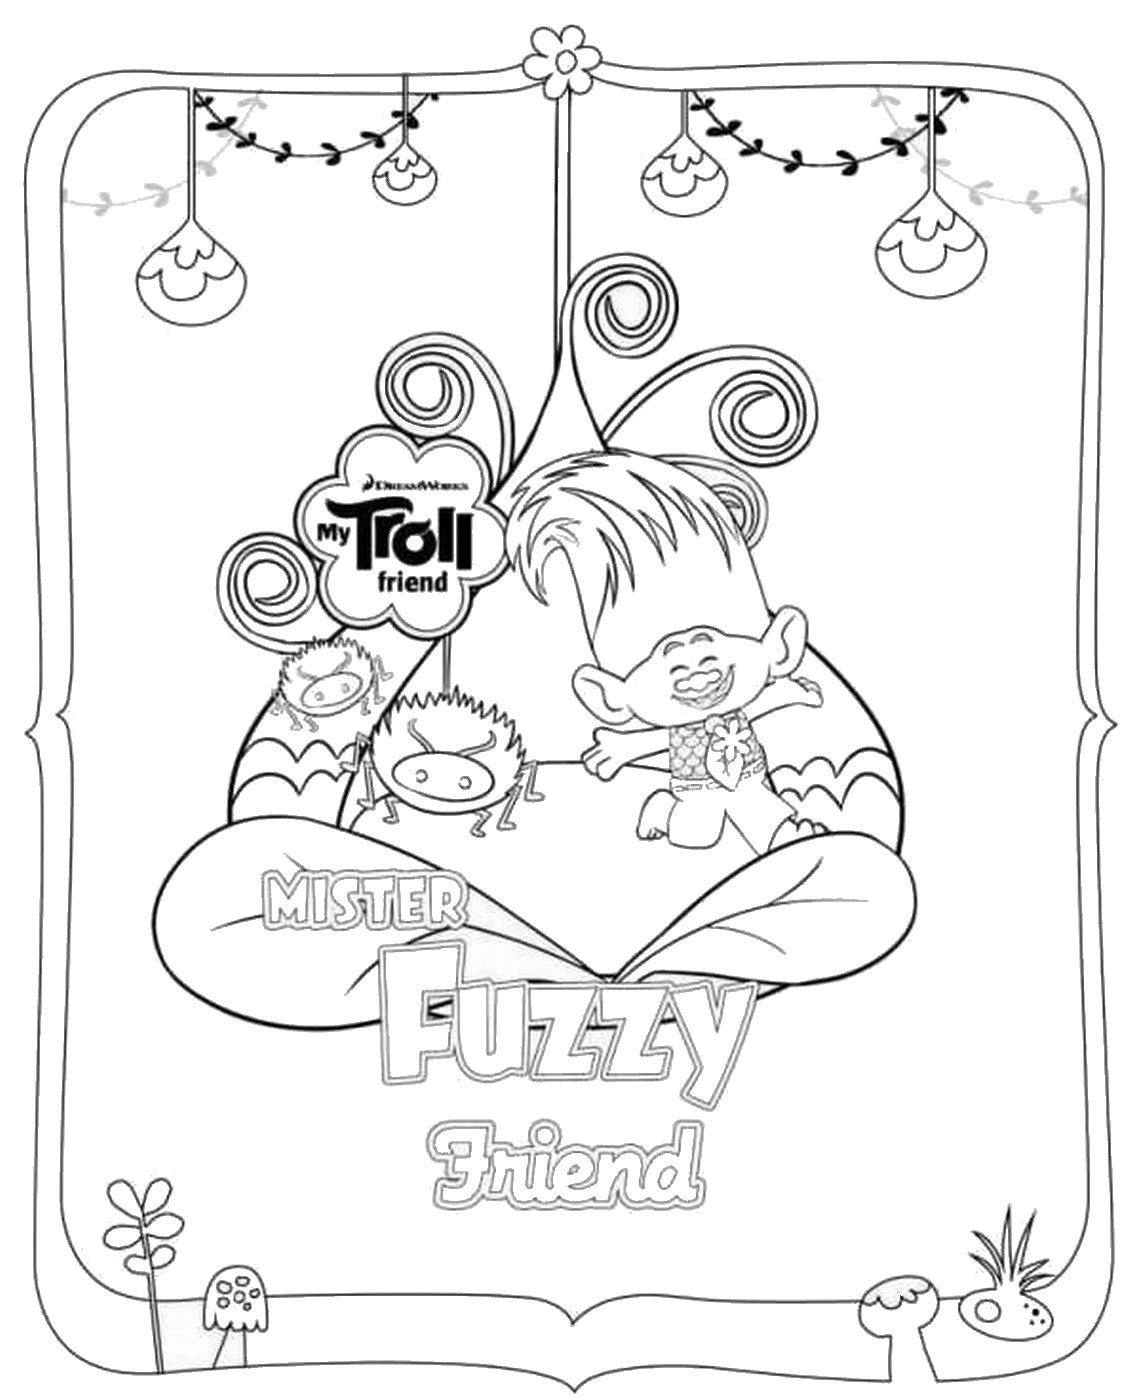 trolls movie coloring pages Trolls to download   Trolls Kids Coloring Pages trolls movie coloring pages